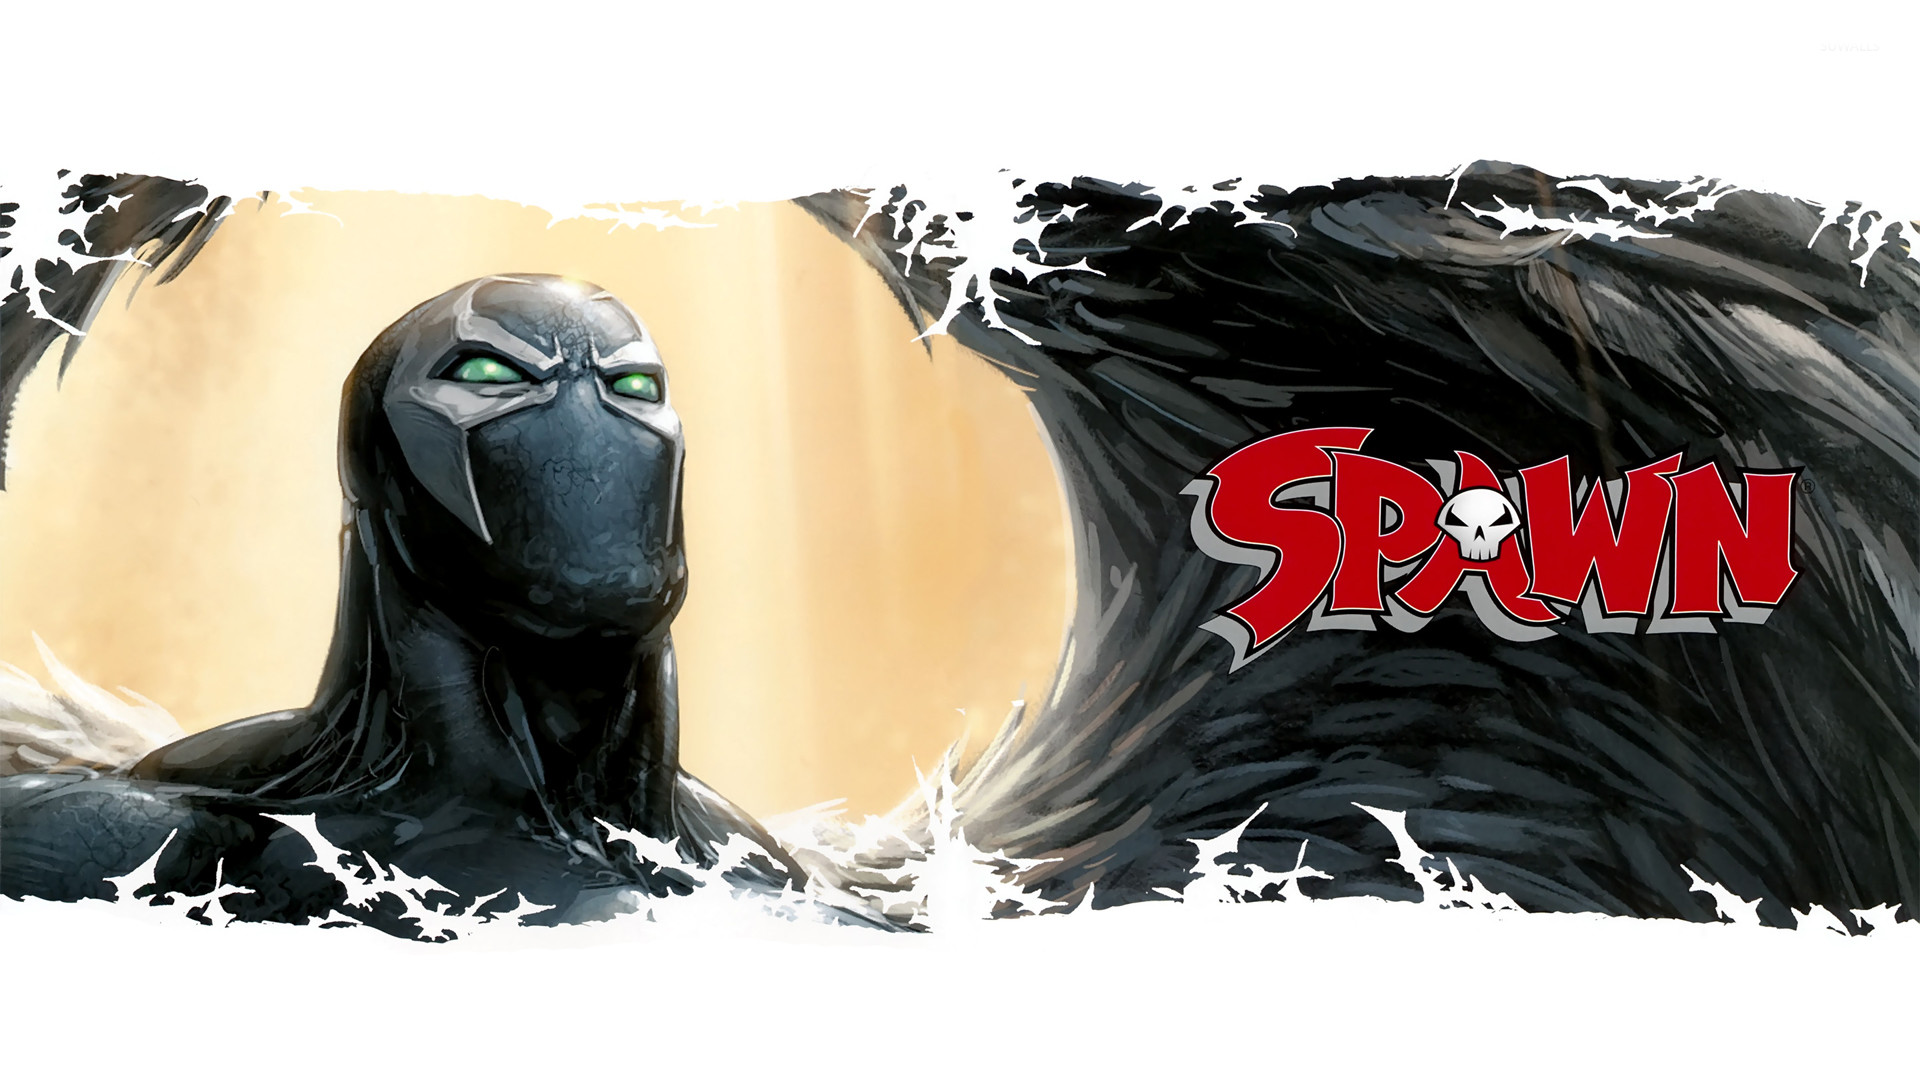 Spawn with black wings wallpaper